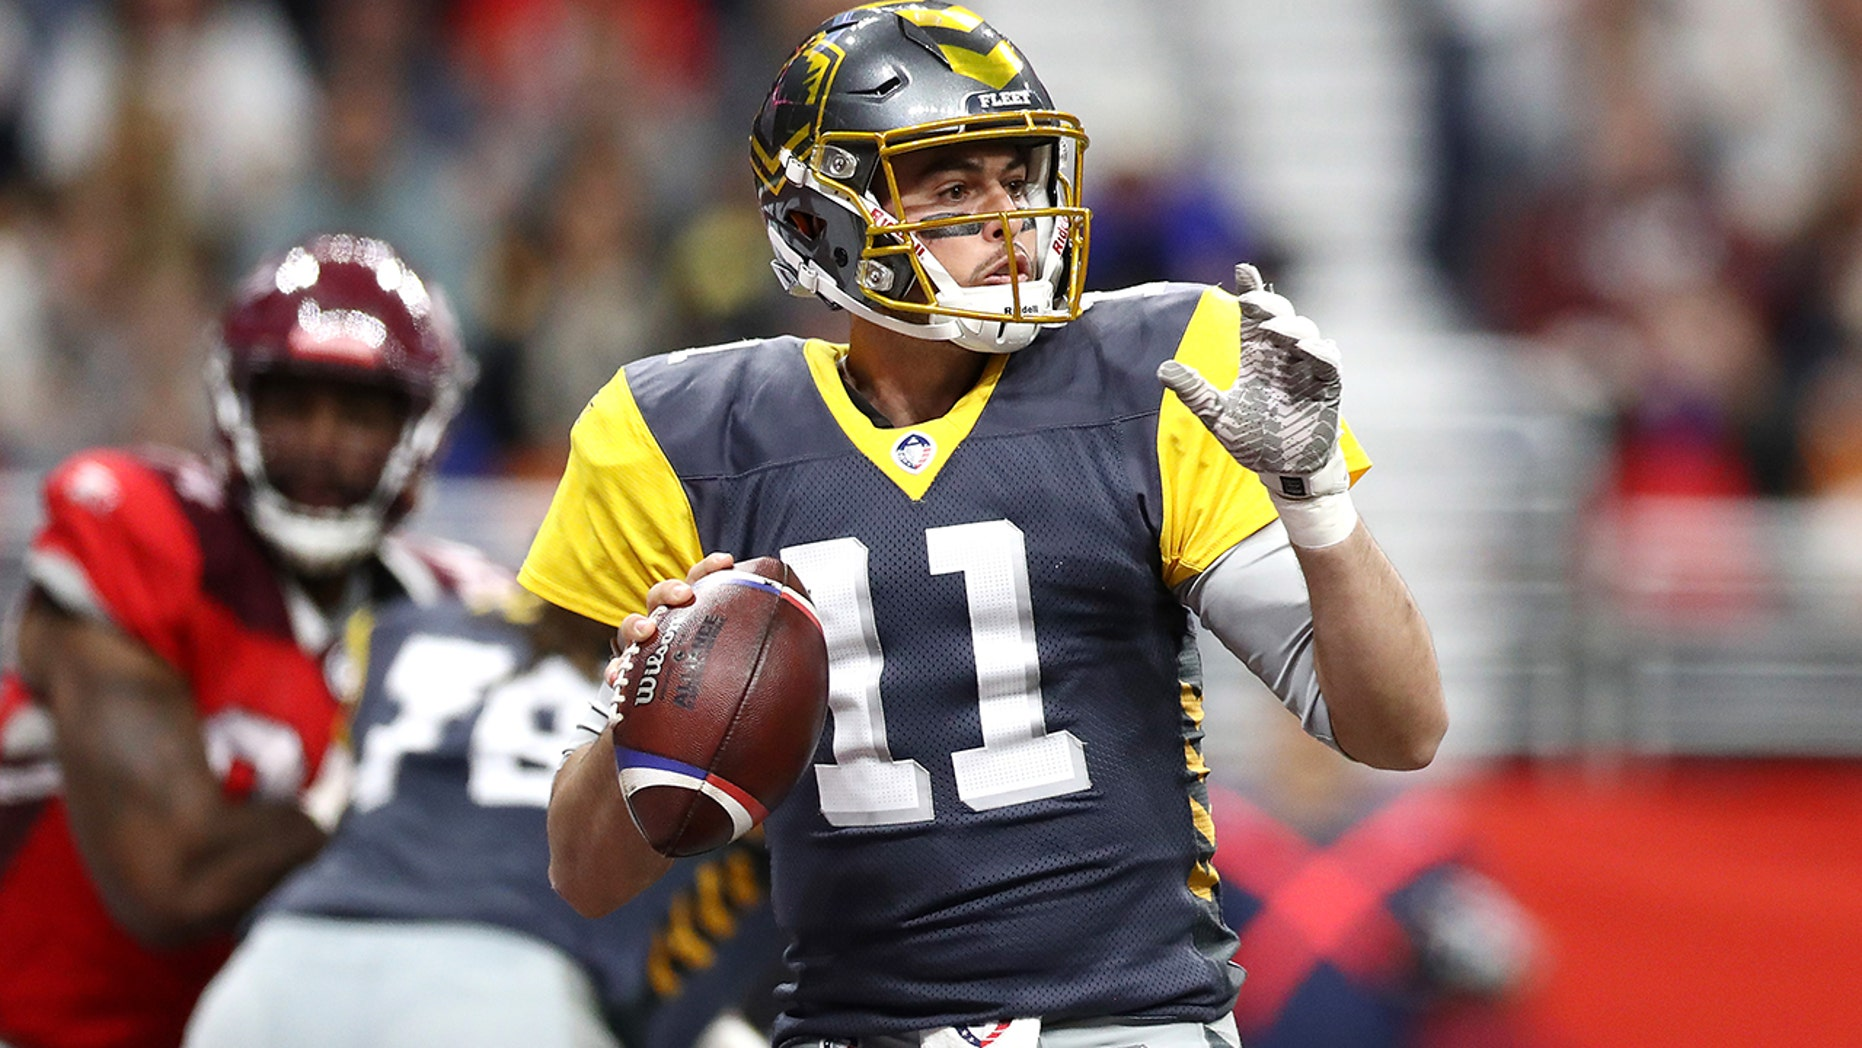 MikeBercovici #11 of the San Diego Fleet looks to pass the ball during the first half against the the San Antonio Commanders in an Alliance of American Football game at the Alamodome